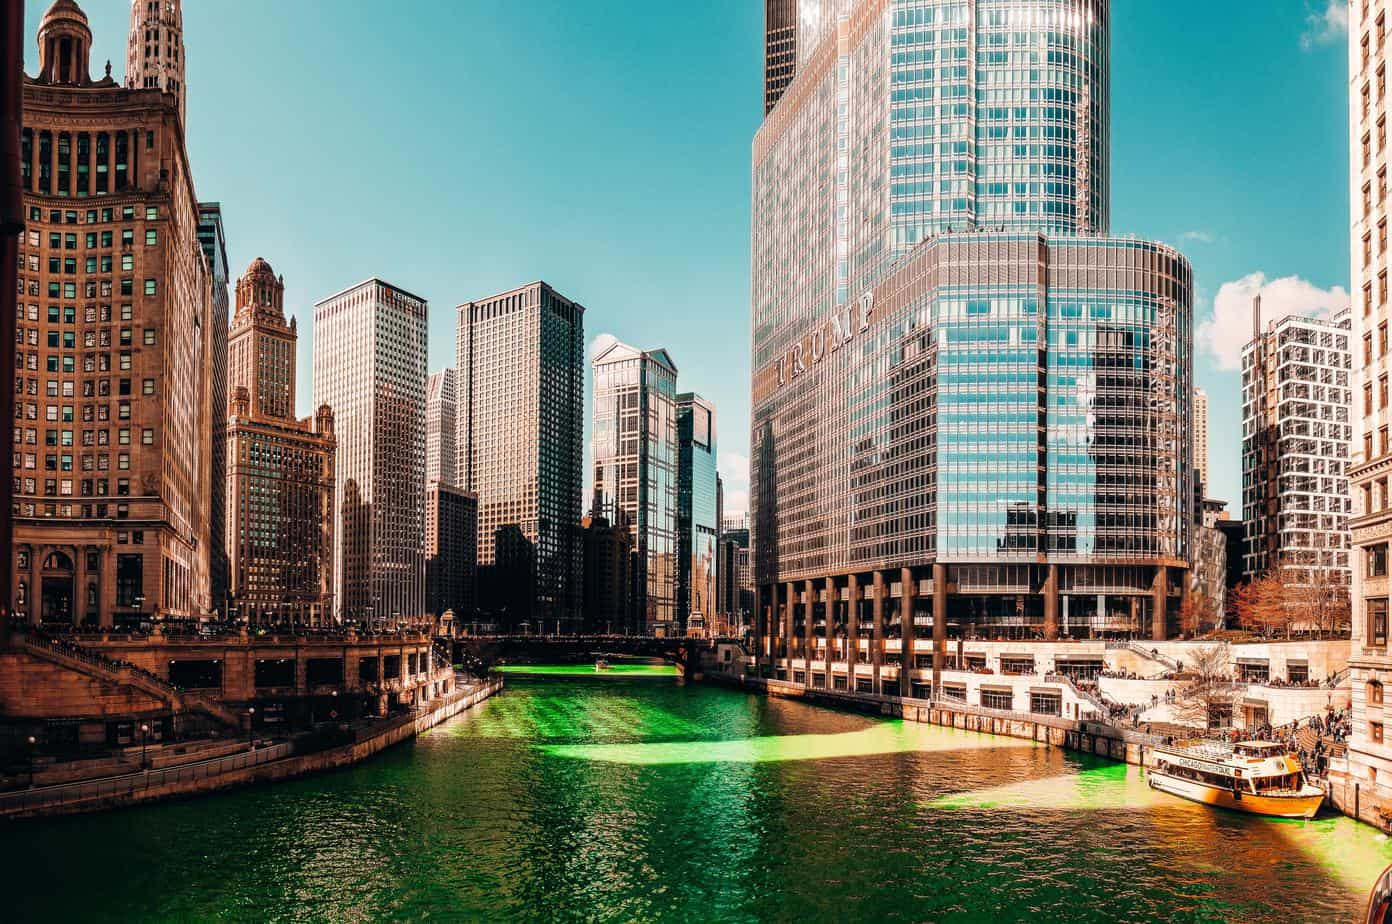 Chicago green for ireland another amazing Irish fact